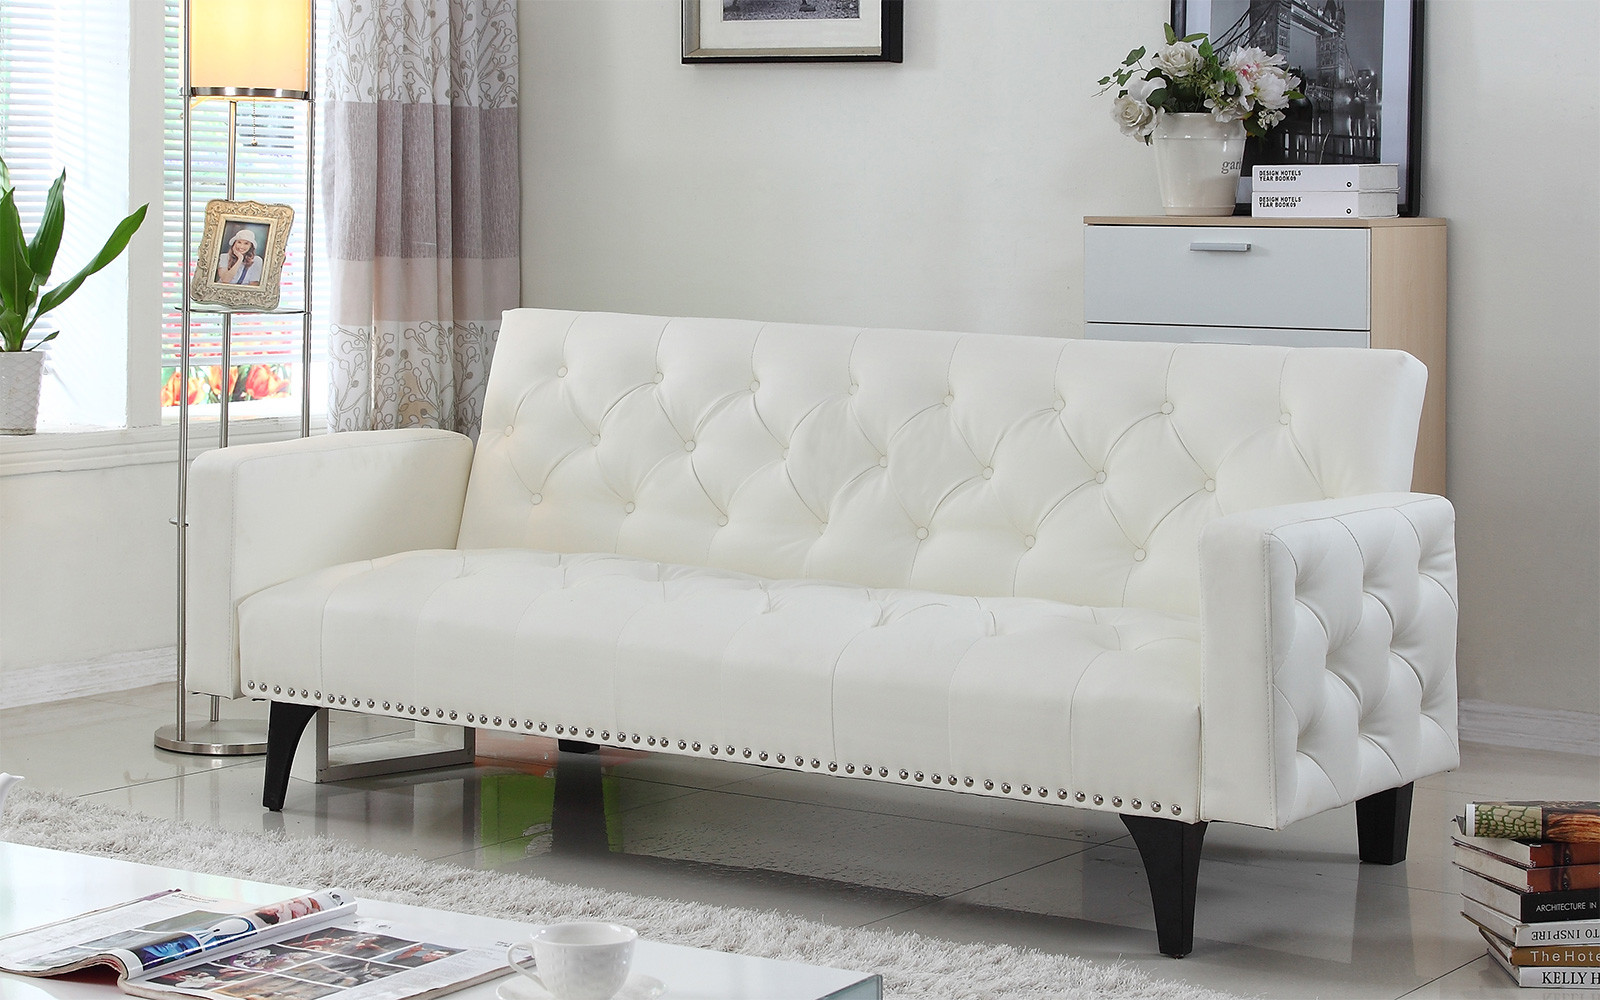 Modern Tufted Bonded Leather Sleeper Futon Sofa With Nailhead Trim    Walmart.com